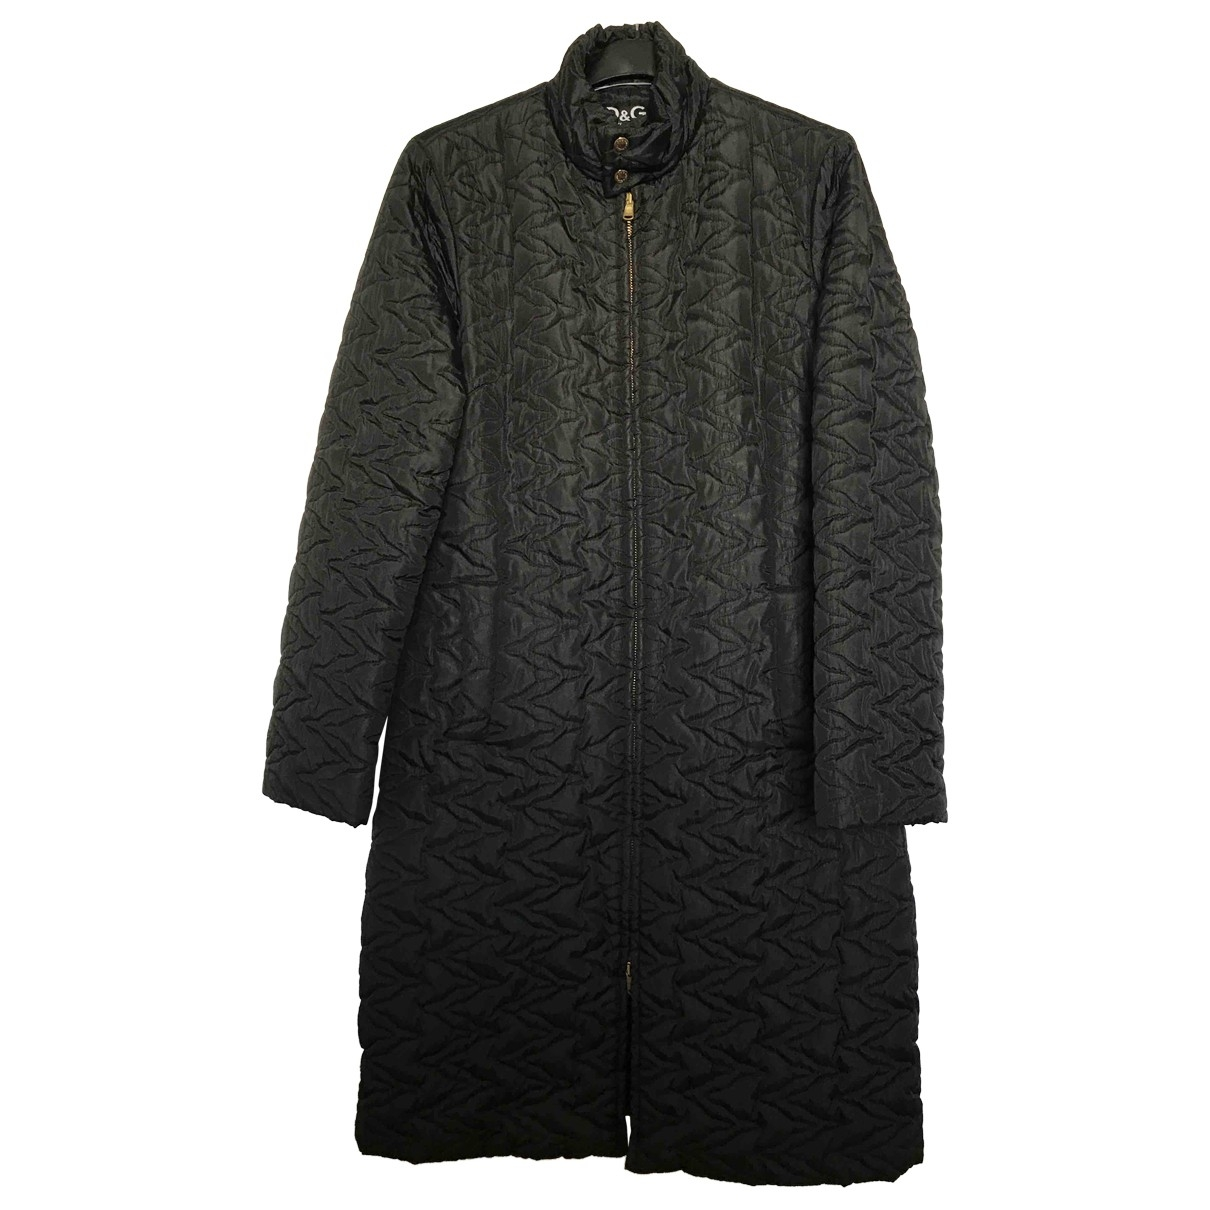 D&g \N Trench in  Schwarz Synthetik